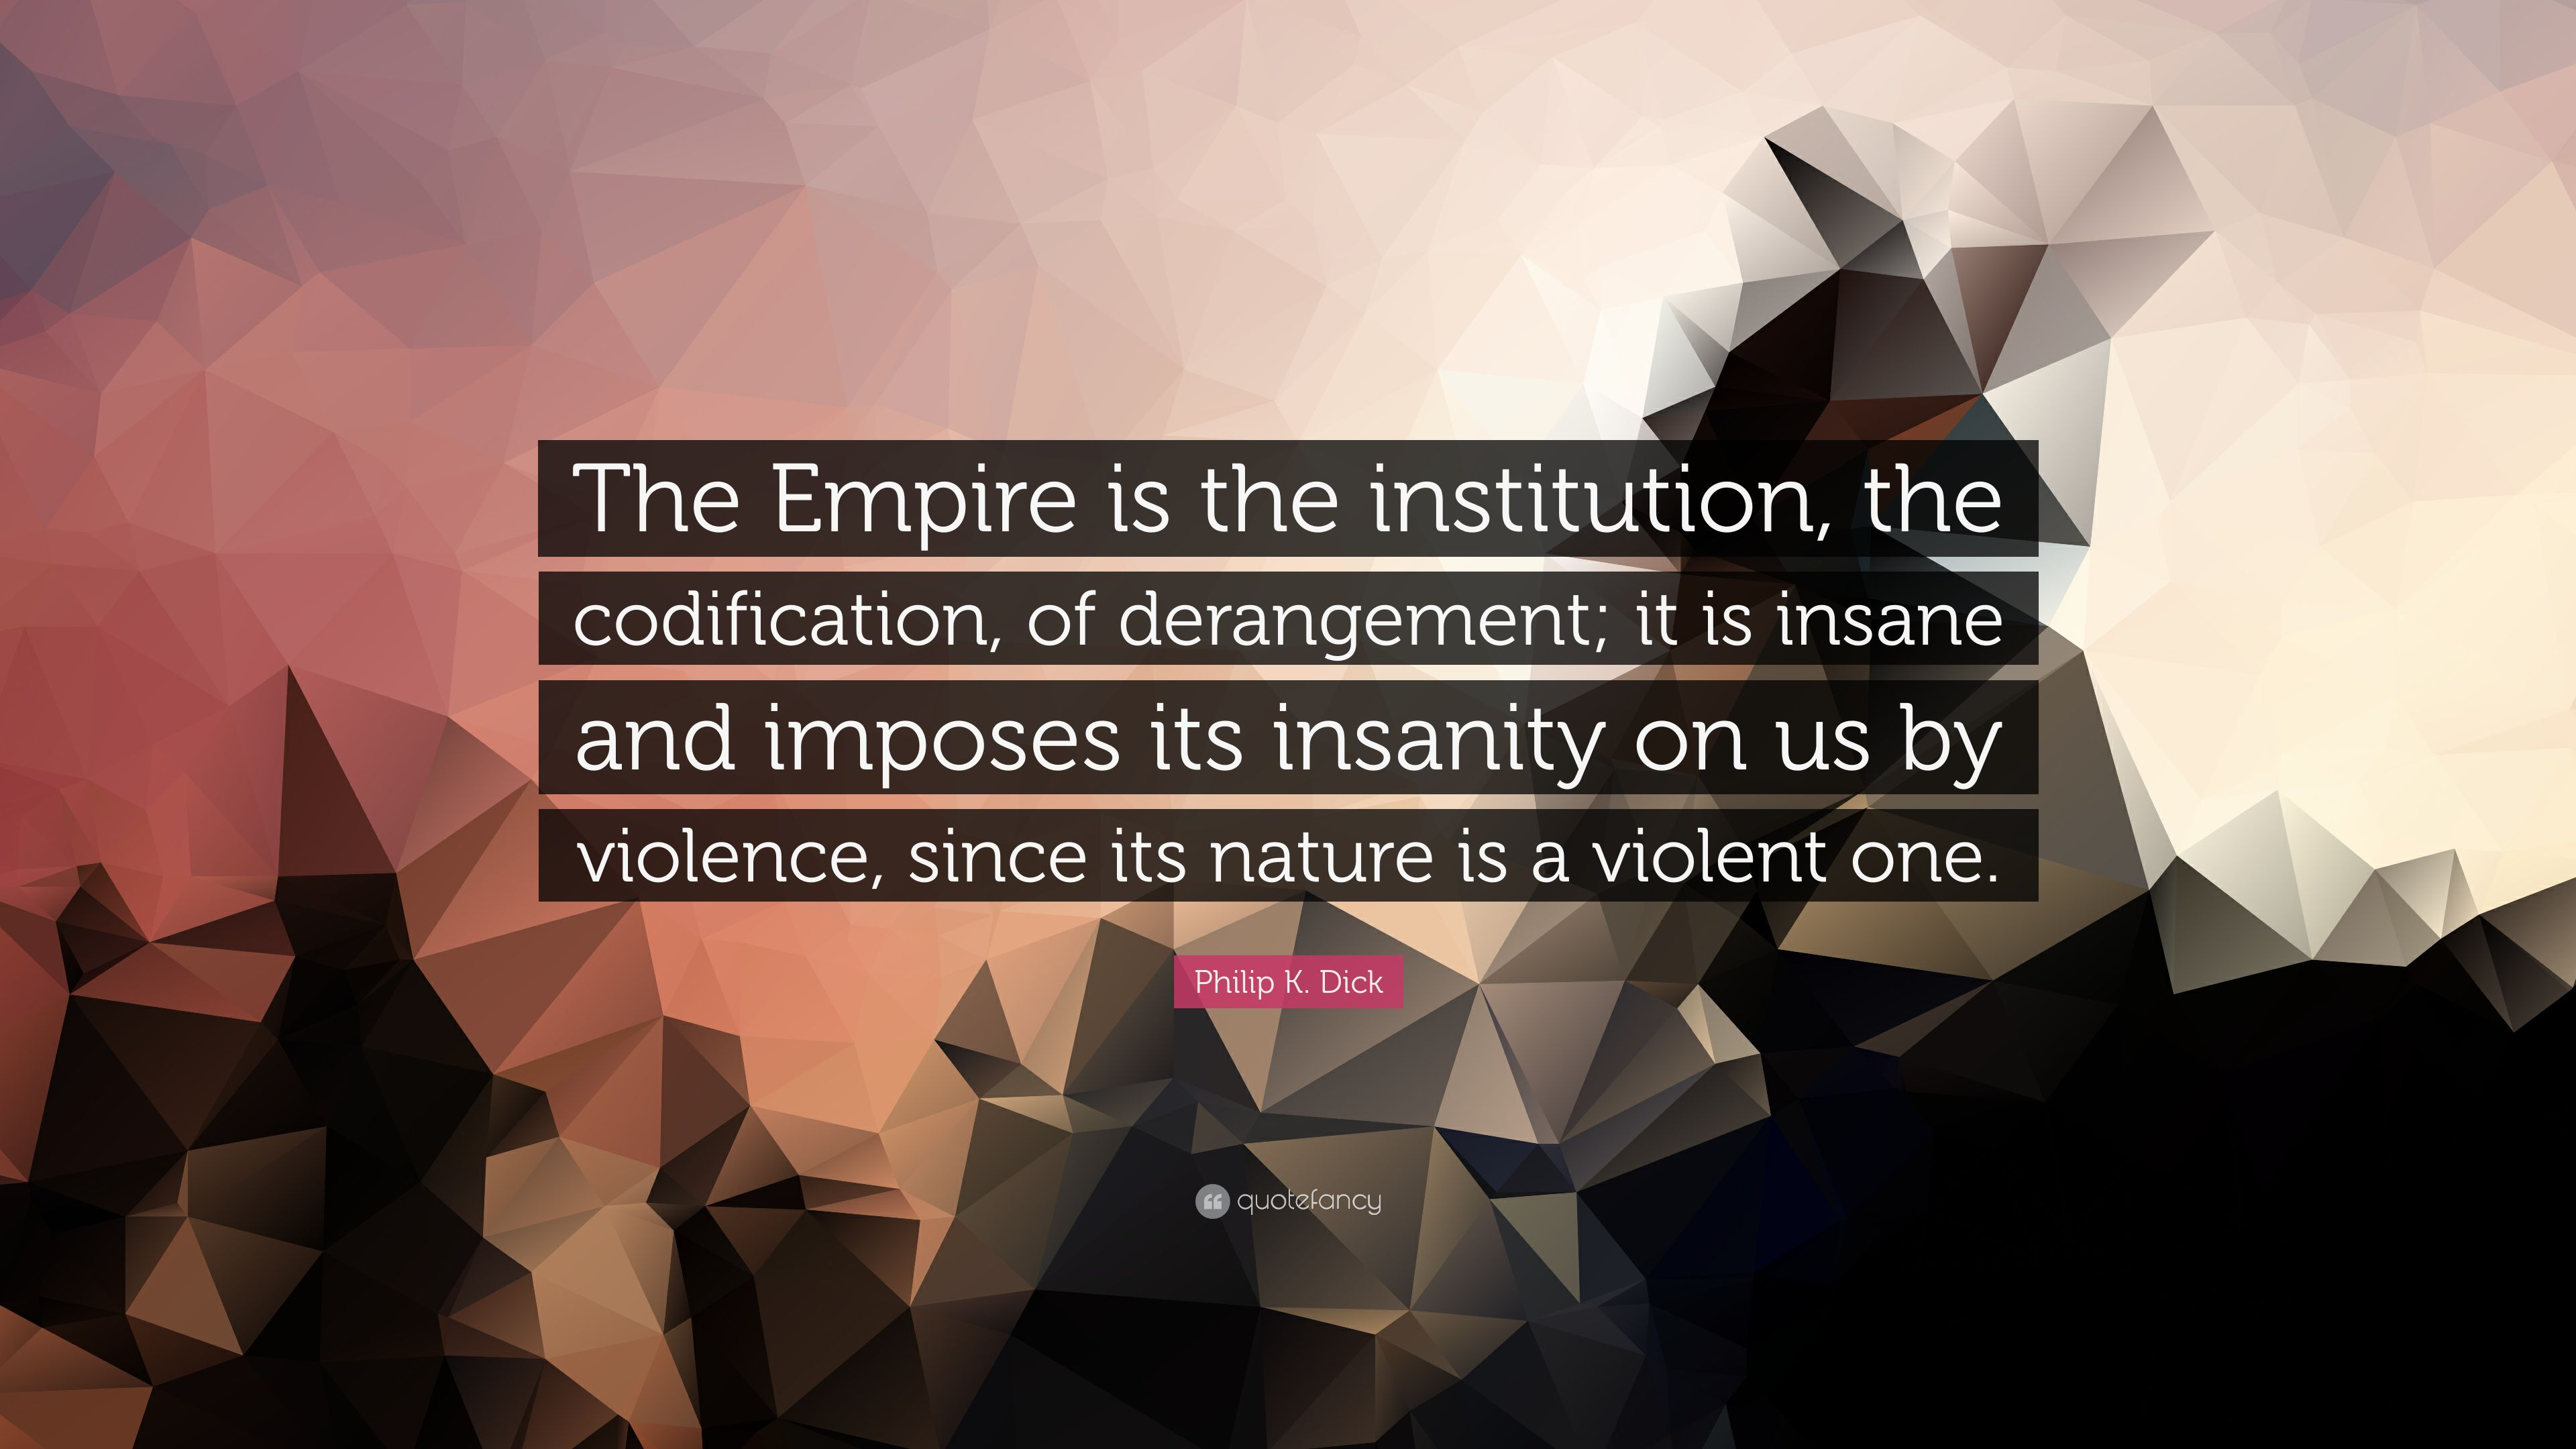 Philip k dick empire